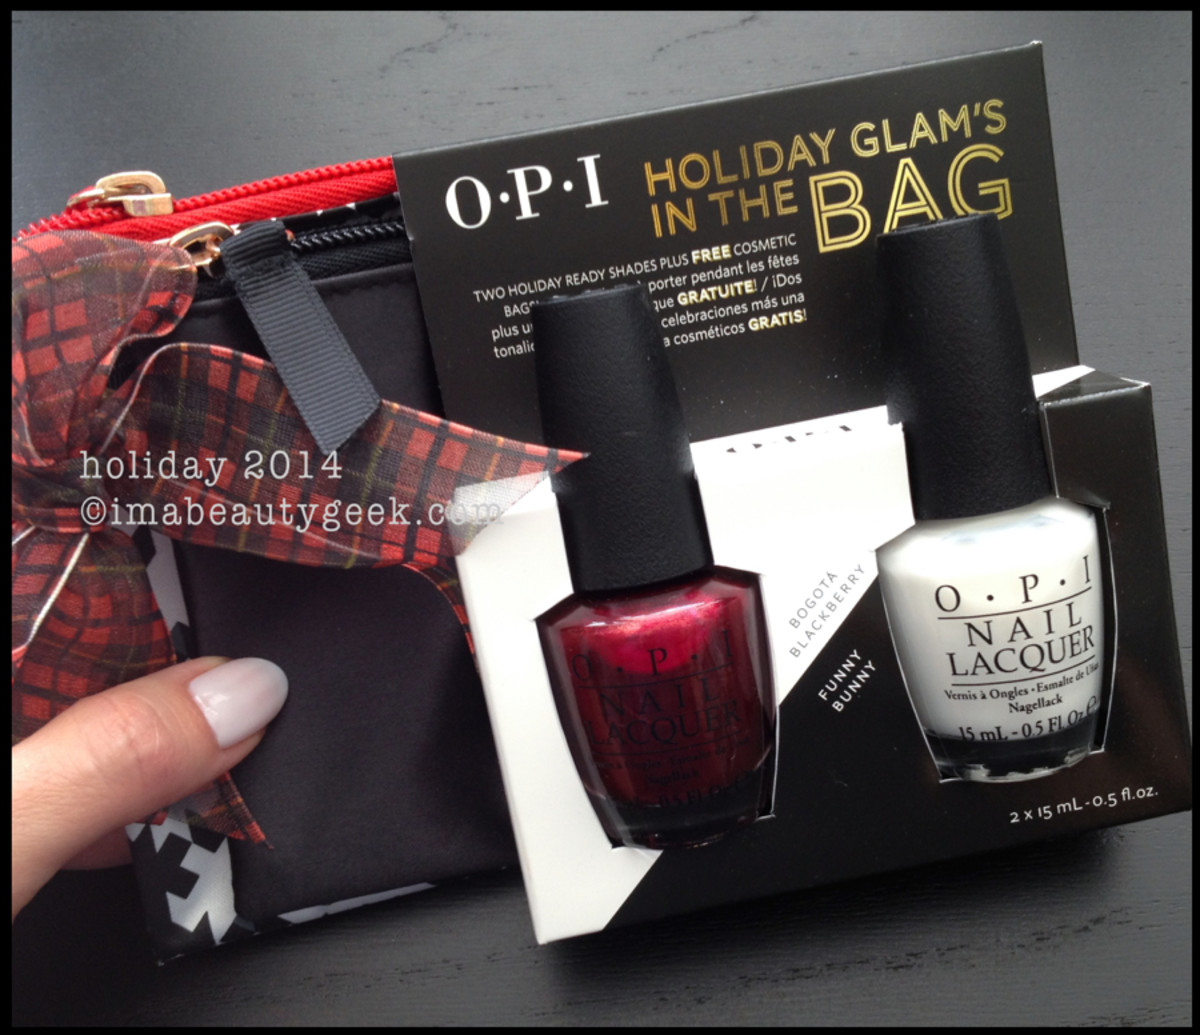 OPI Holiday 2014 Glams in the Bag